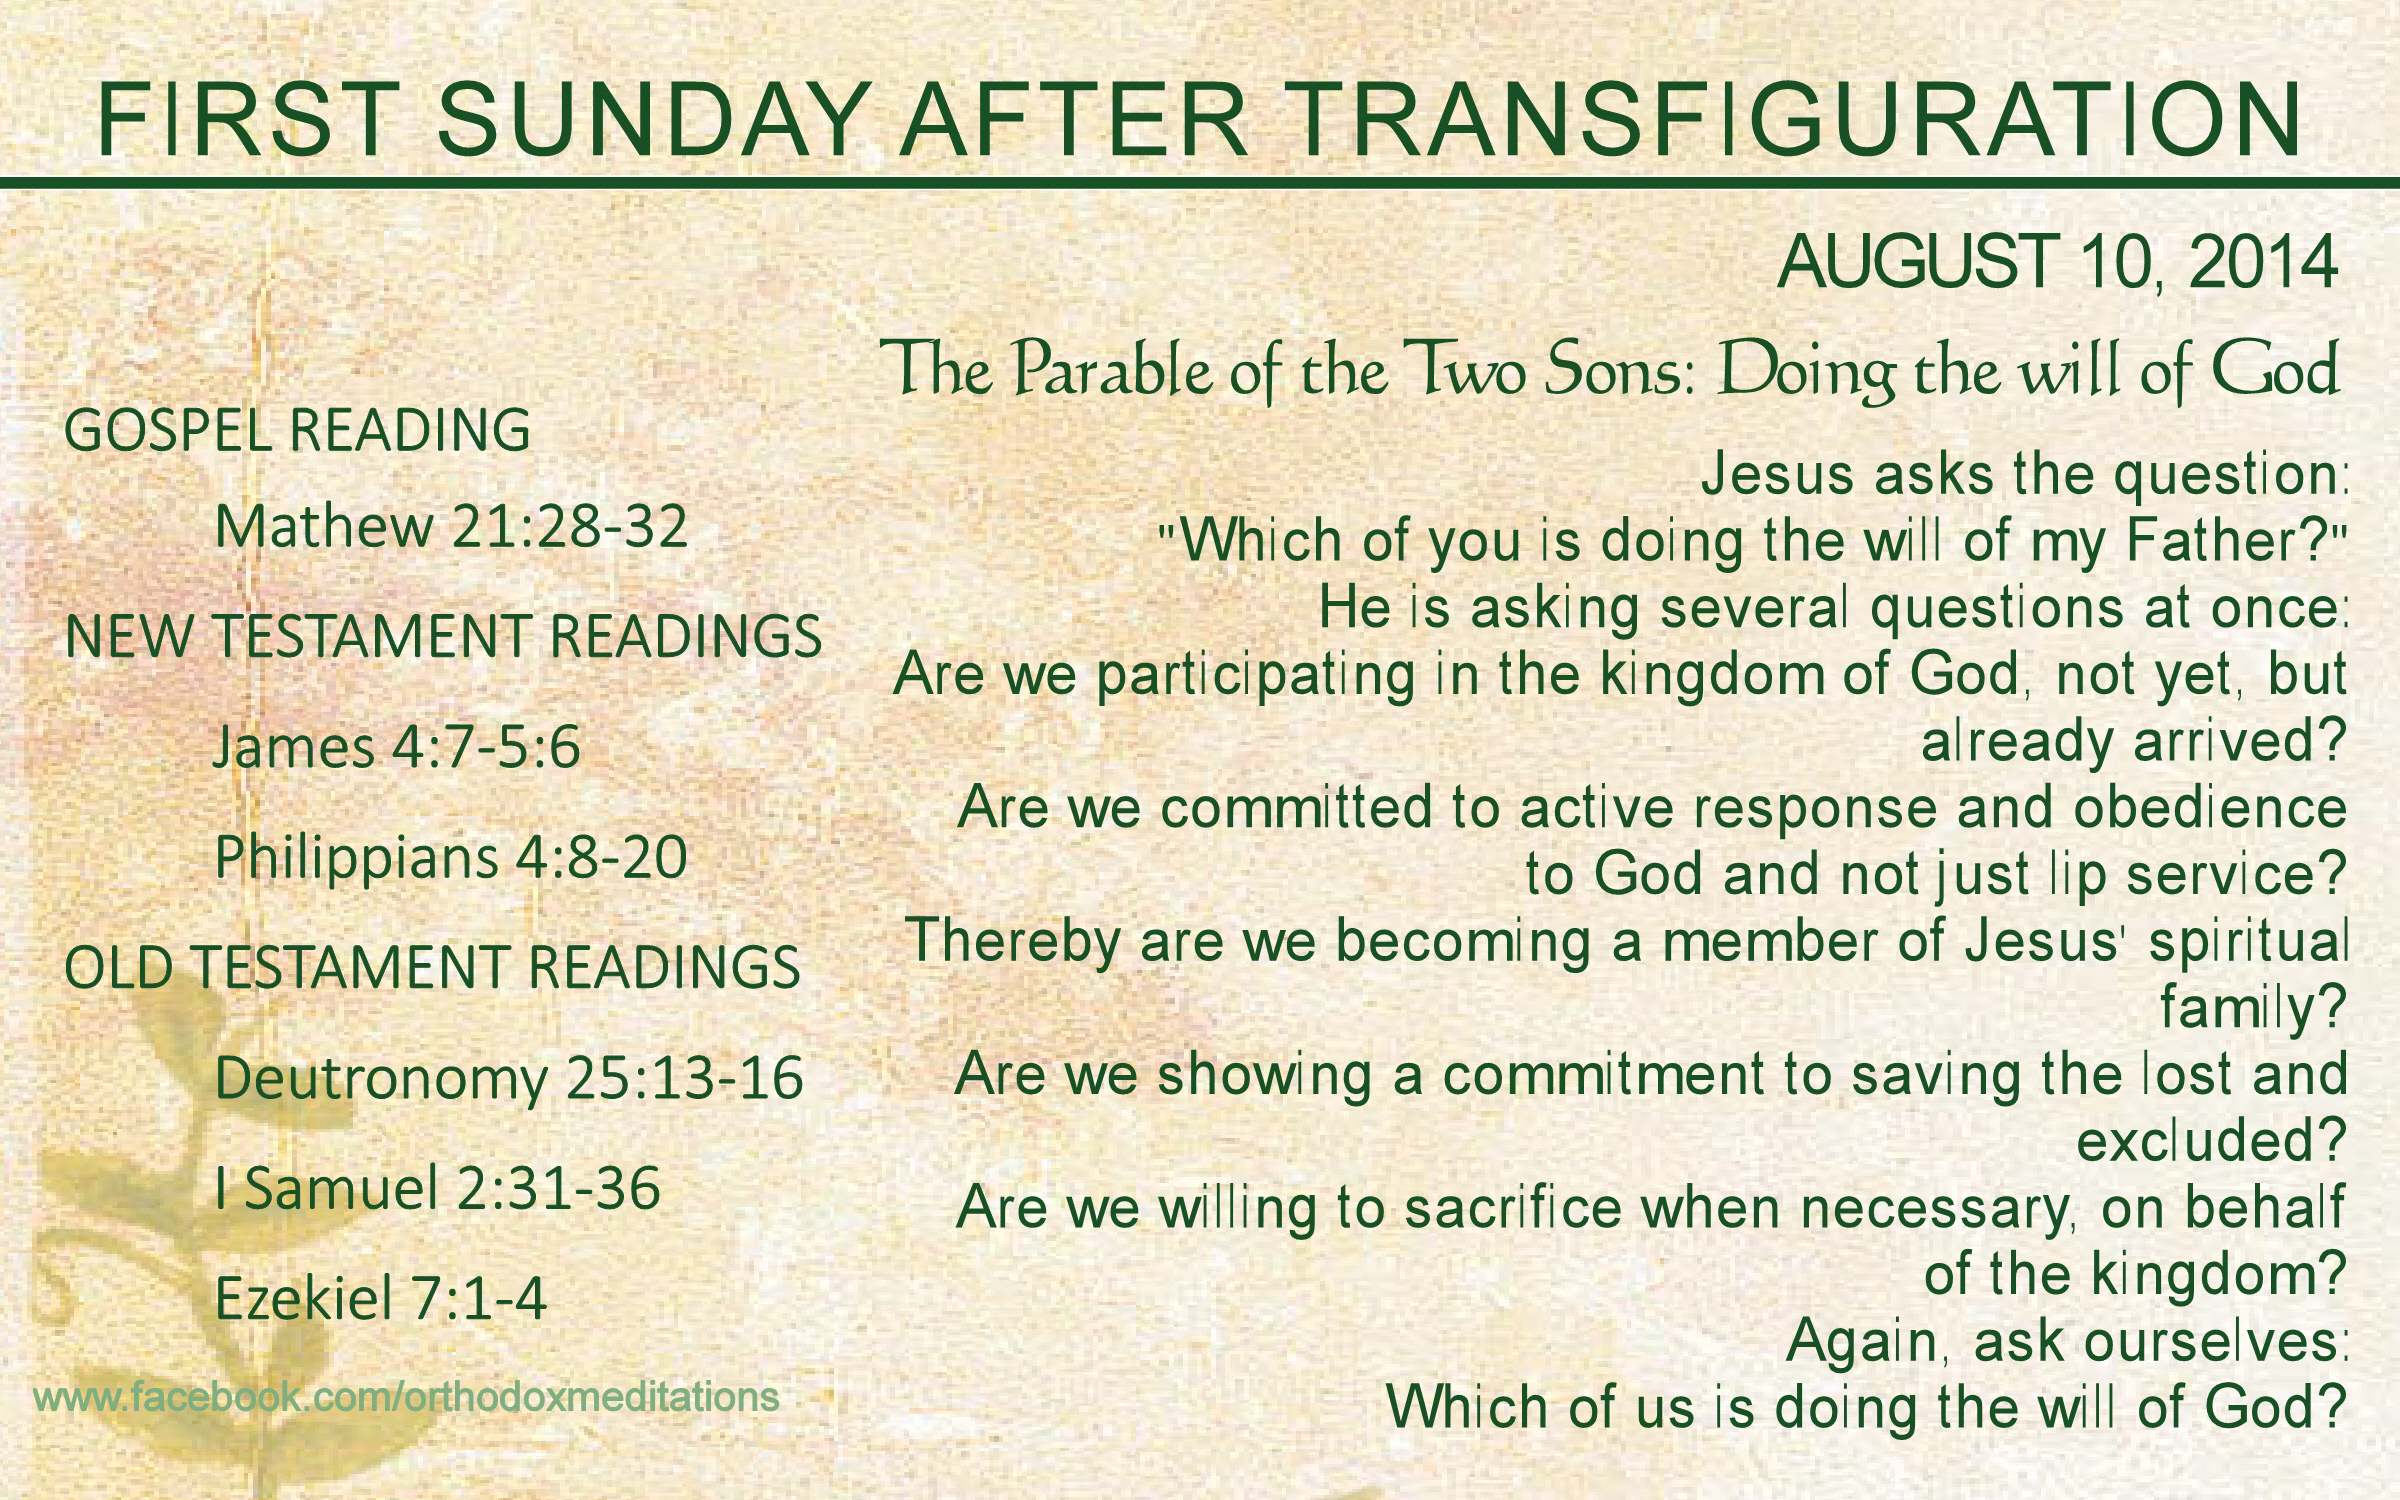 FIRST SUNDAY AFTER TRANSFIGURATION_001